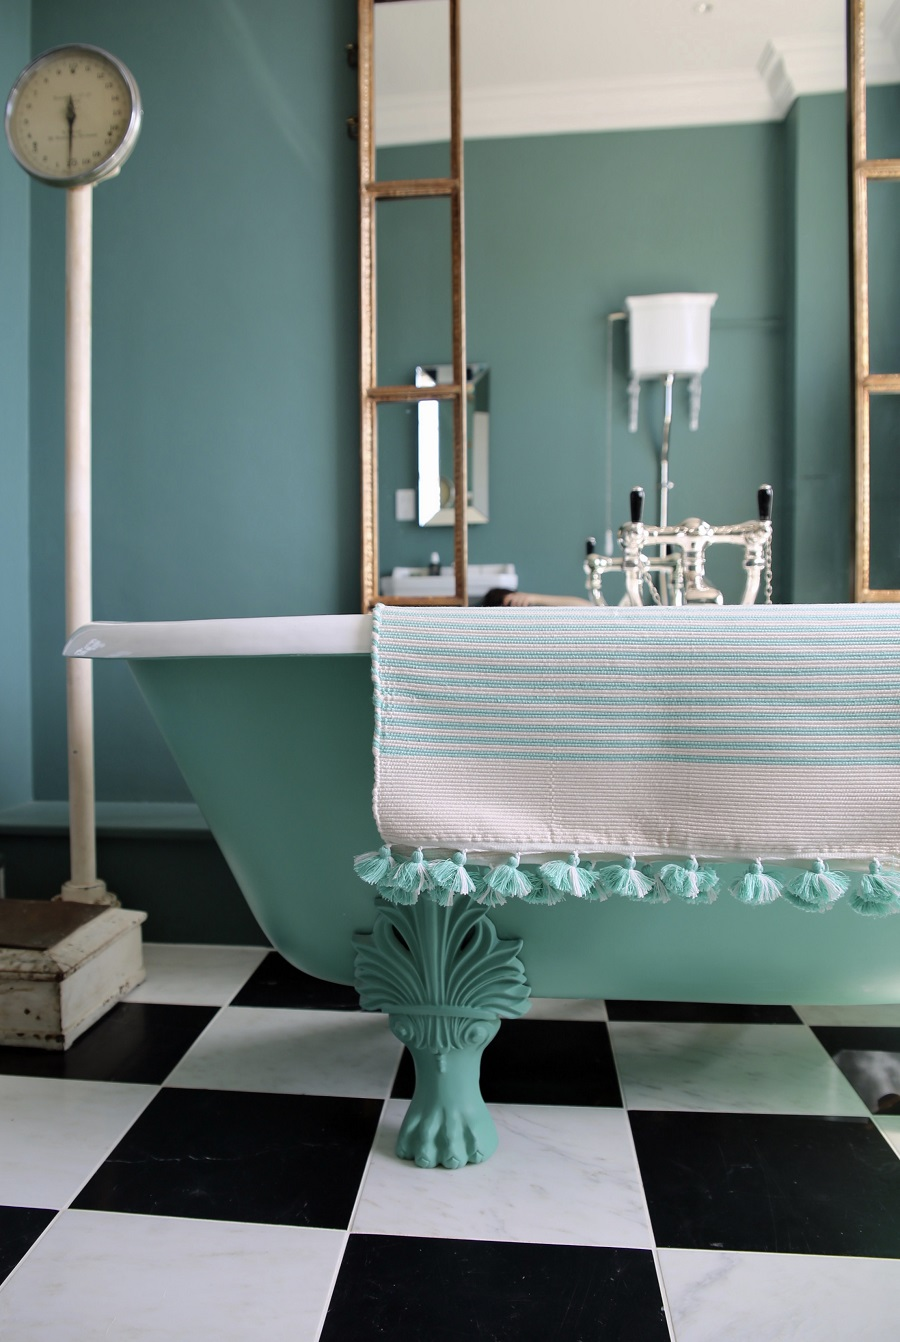 A Teal Bathroom With a Taste of the Kasbah - Get The Look